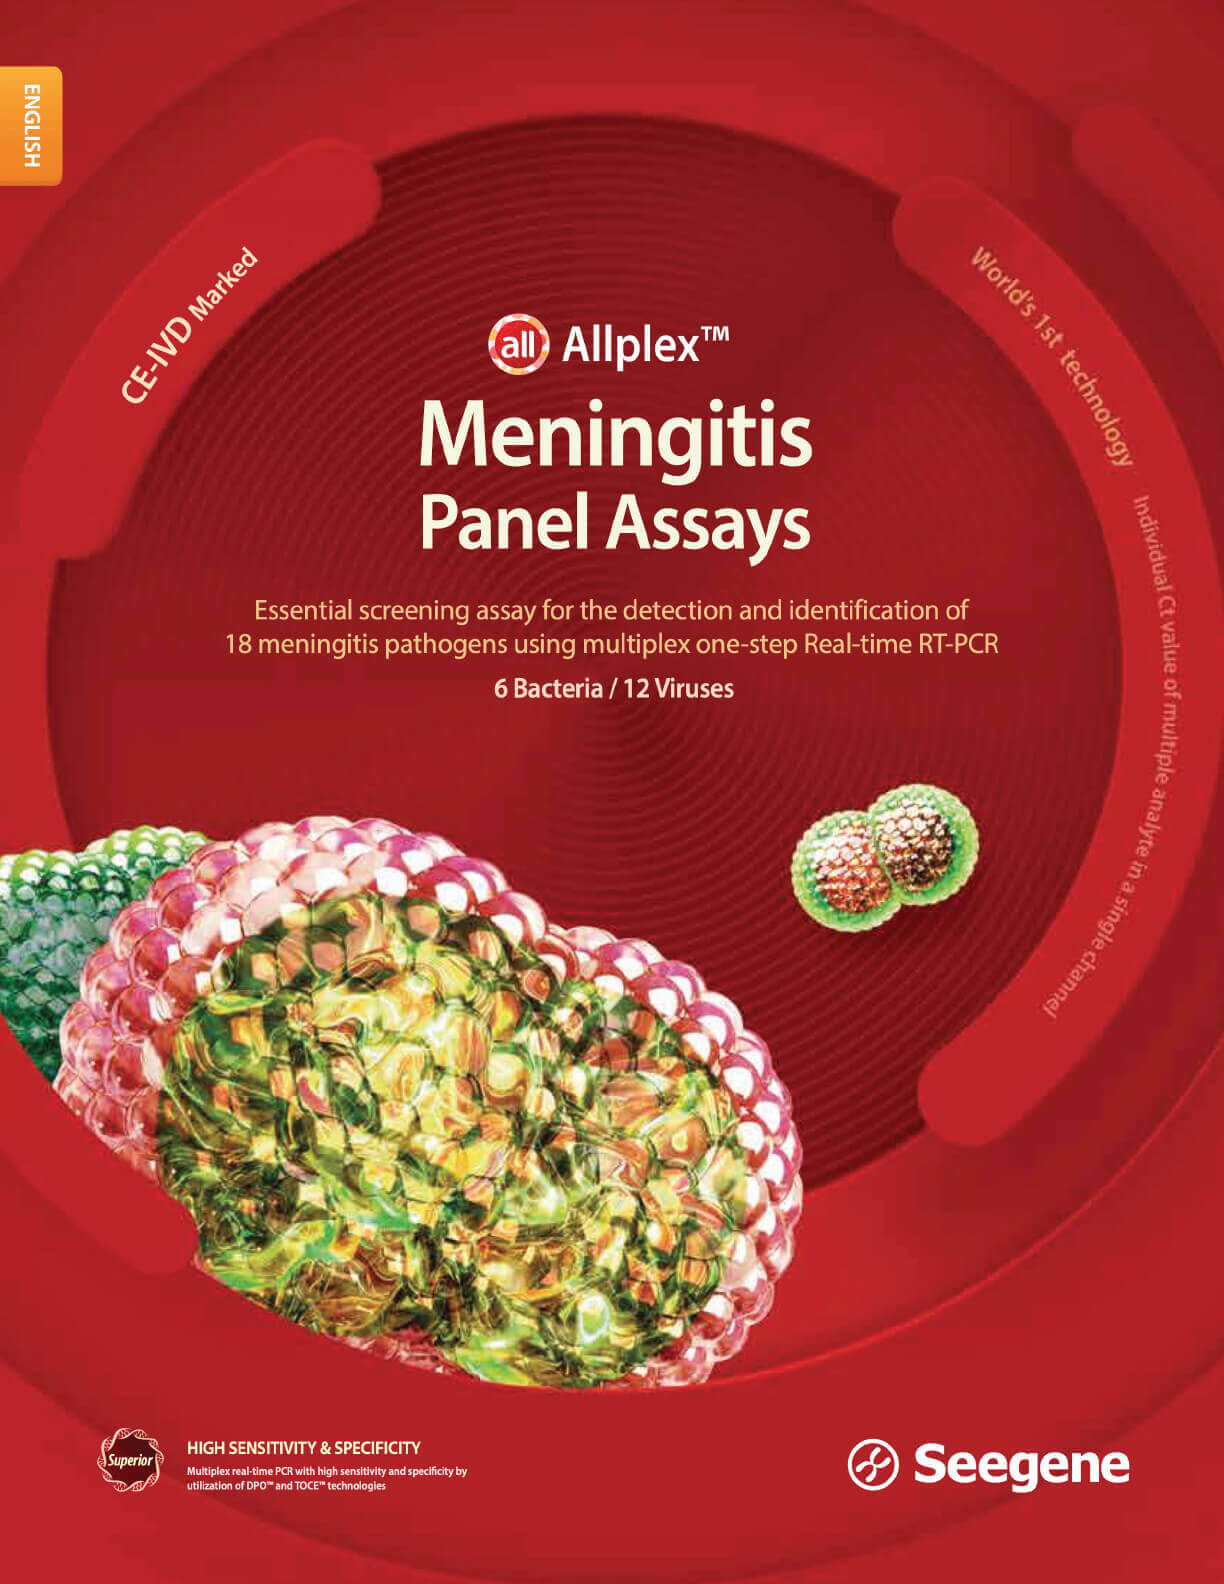 Meningitis Panel Assays